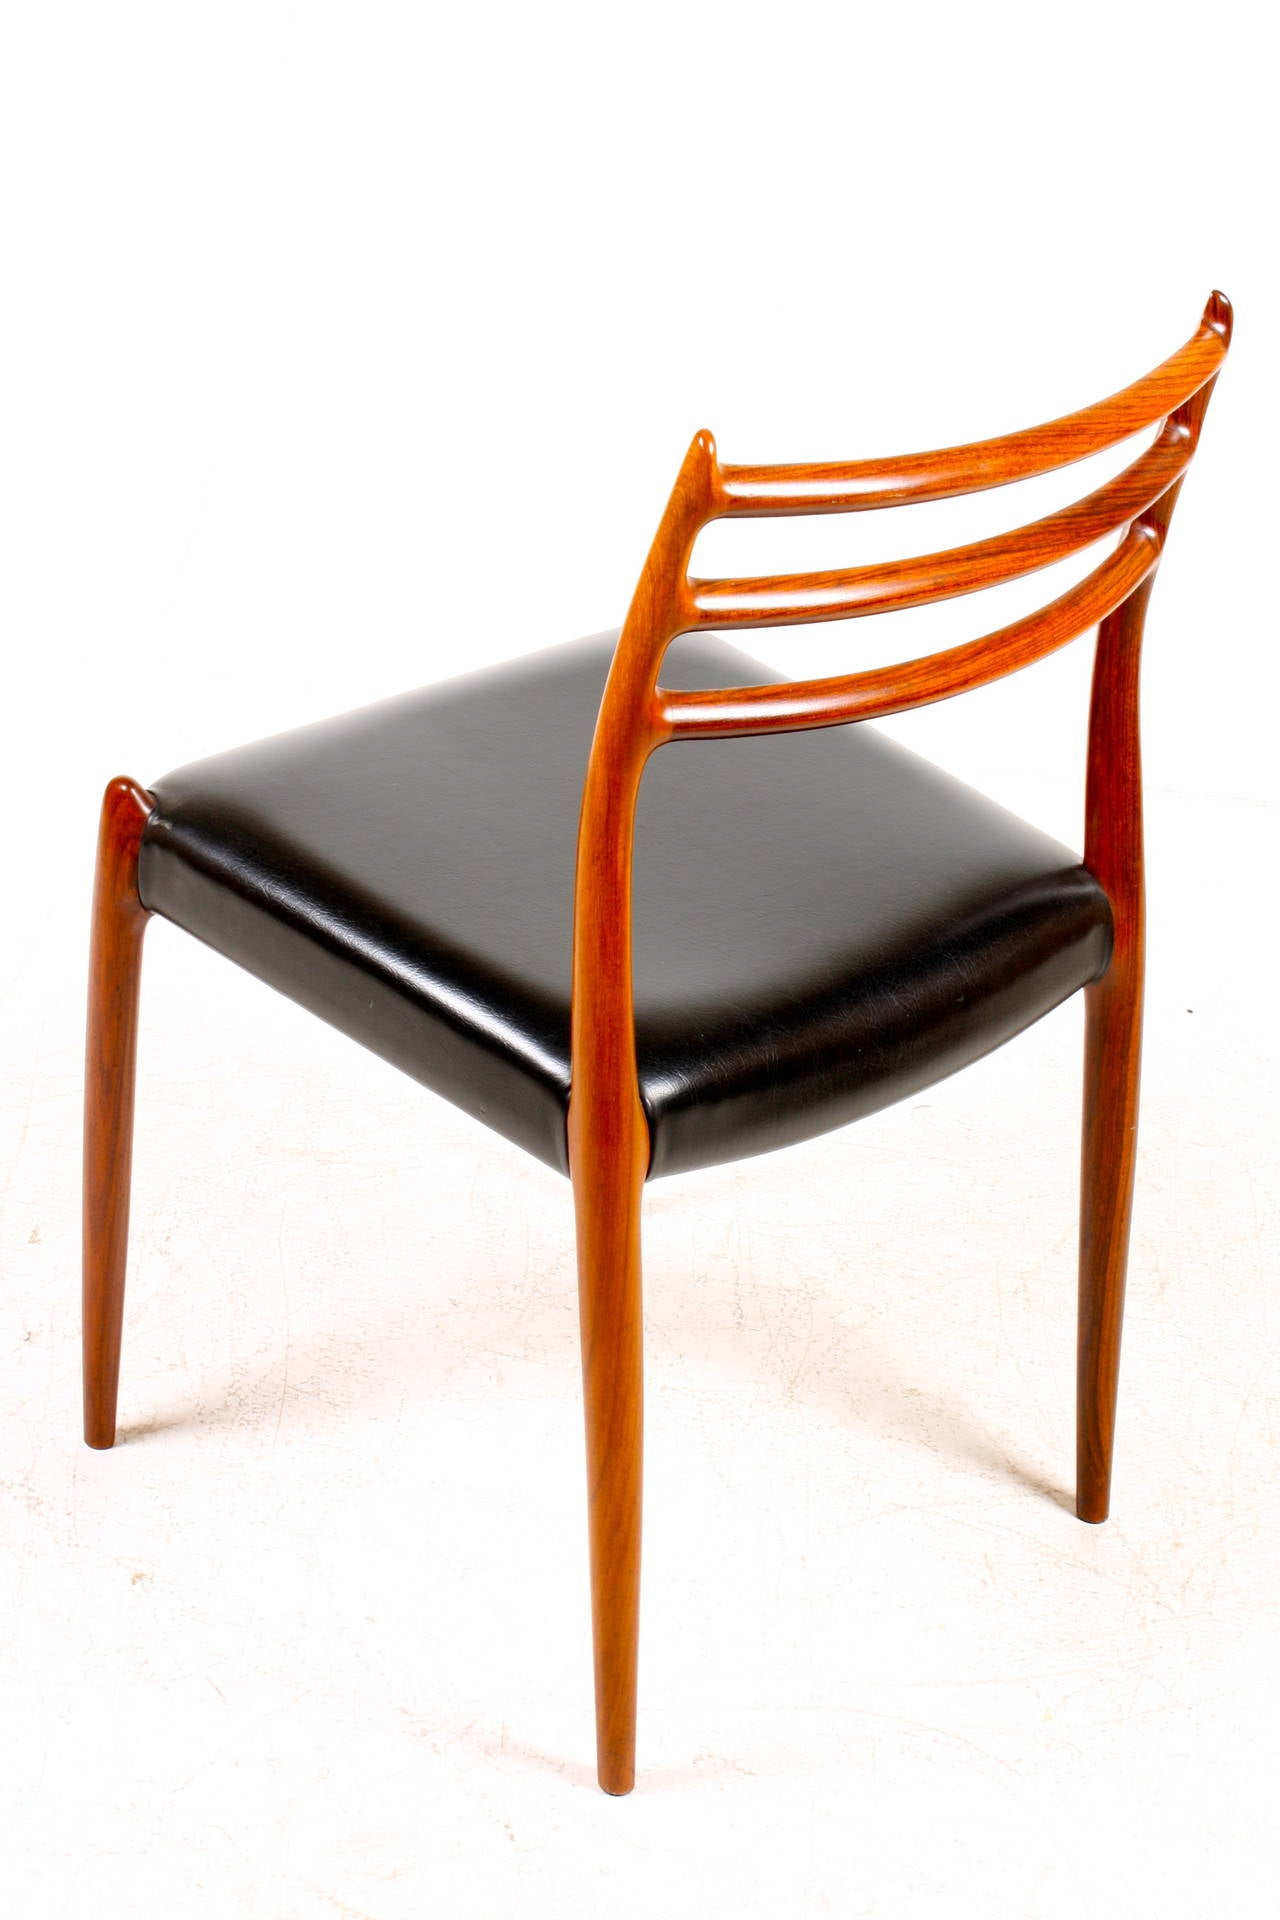 Elegant Dining Chair by NO Moeller at 1stdibs : IMG0280l from www.1stdibs.com size 1280 x 1920 jpeg 144kB